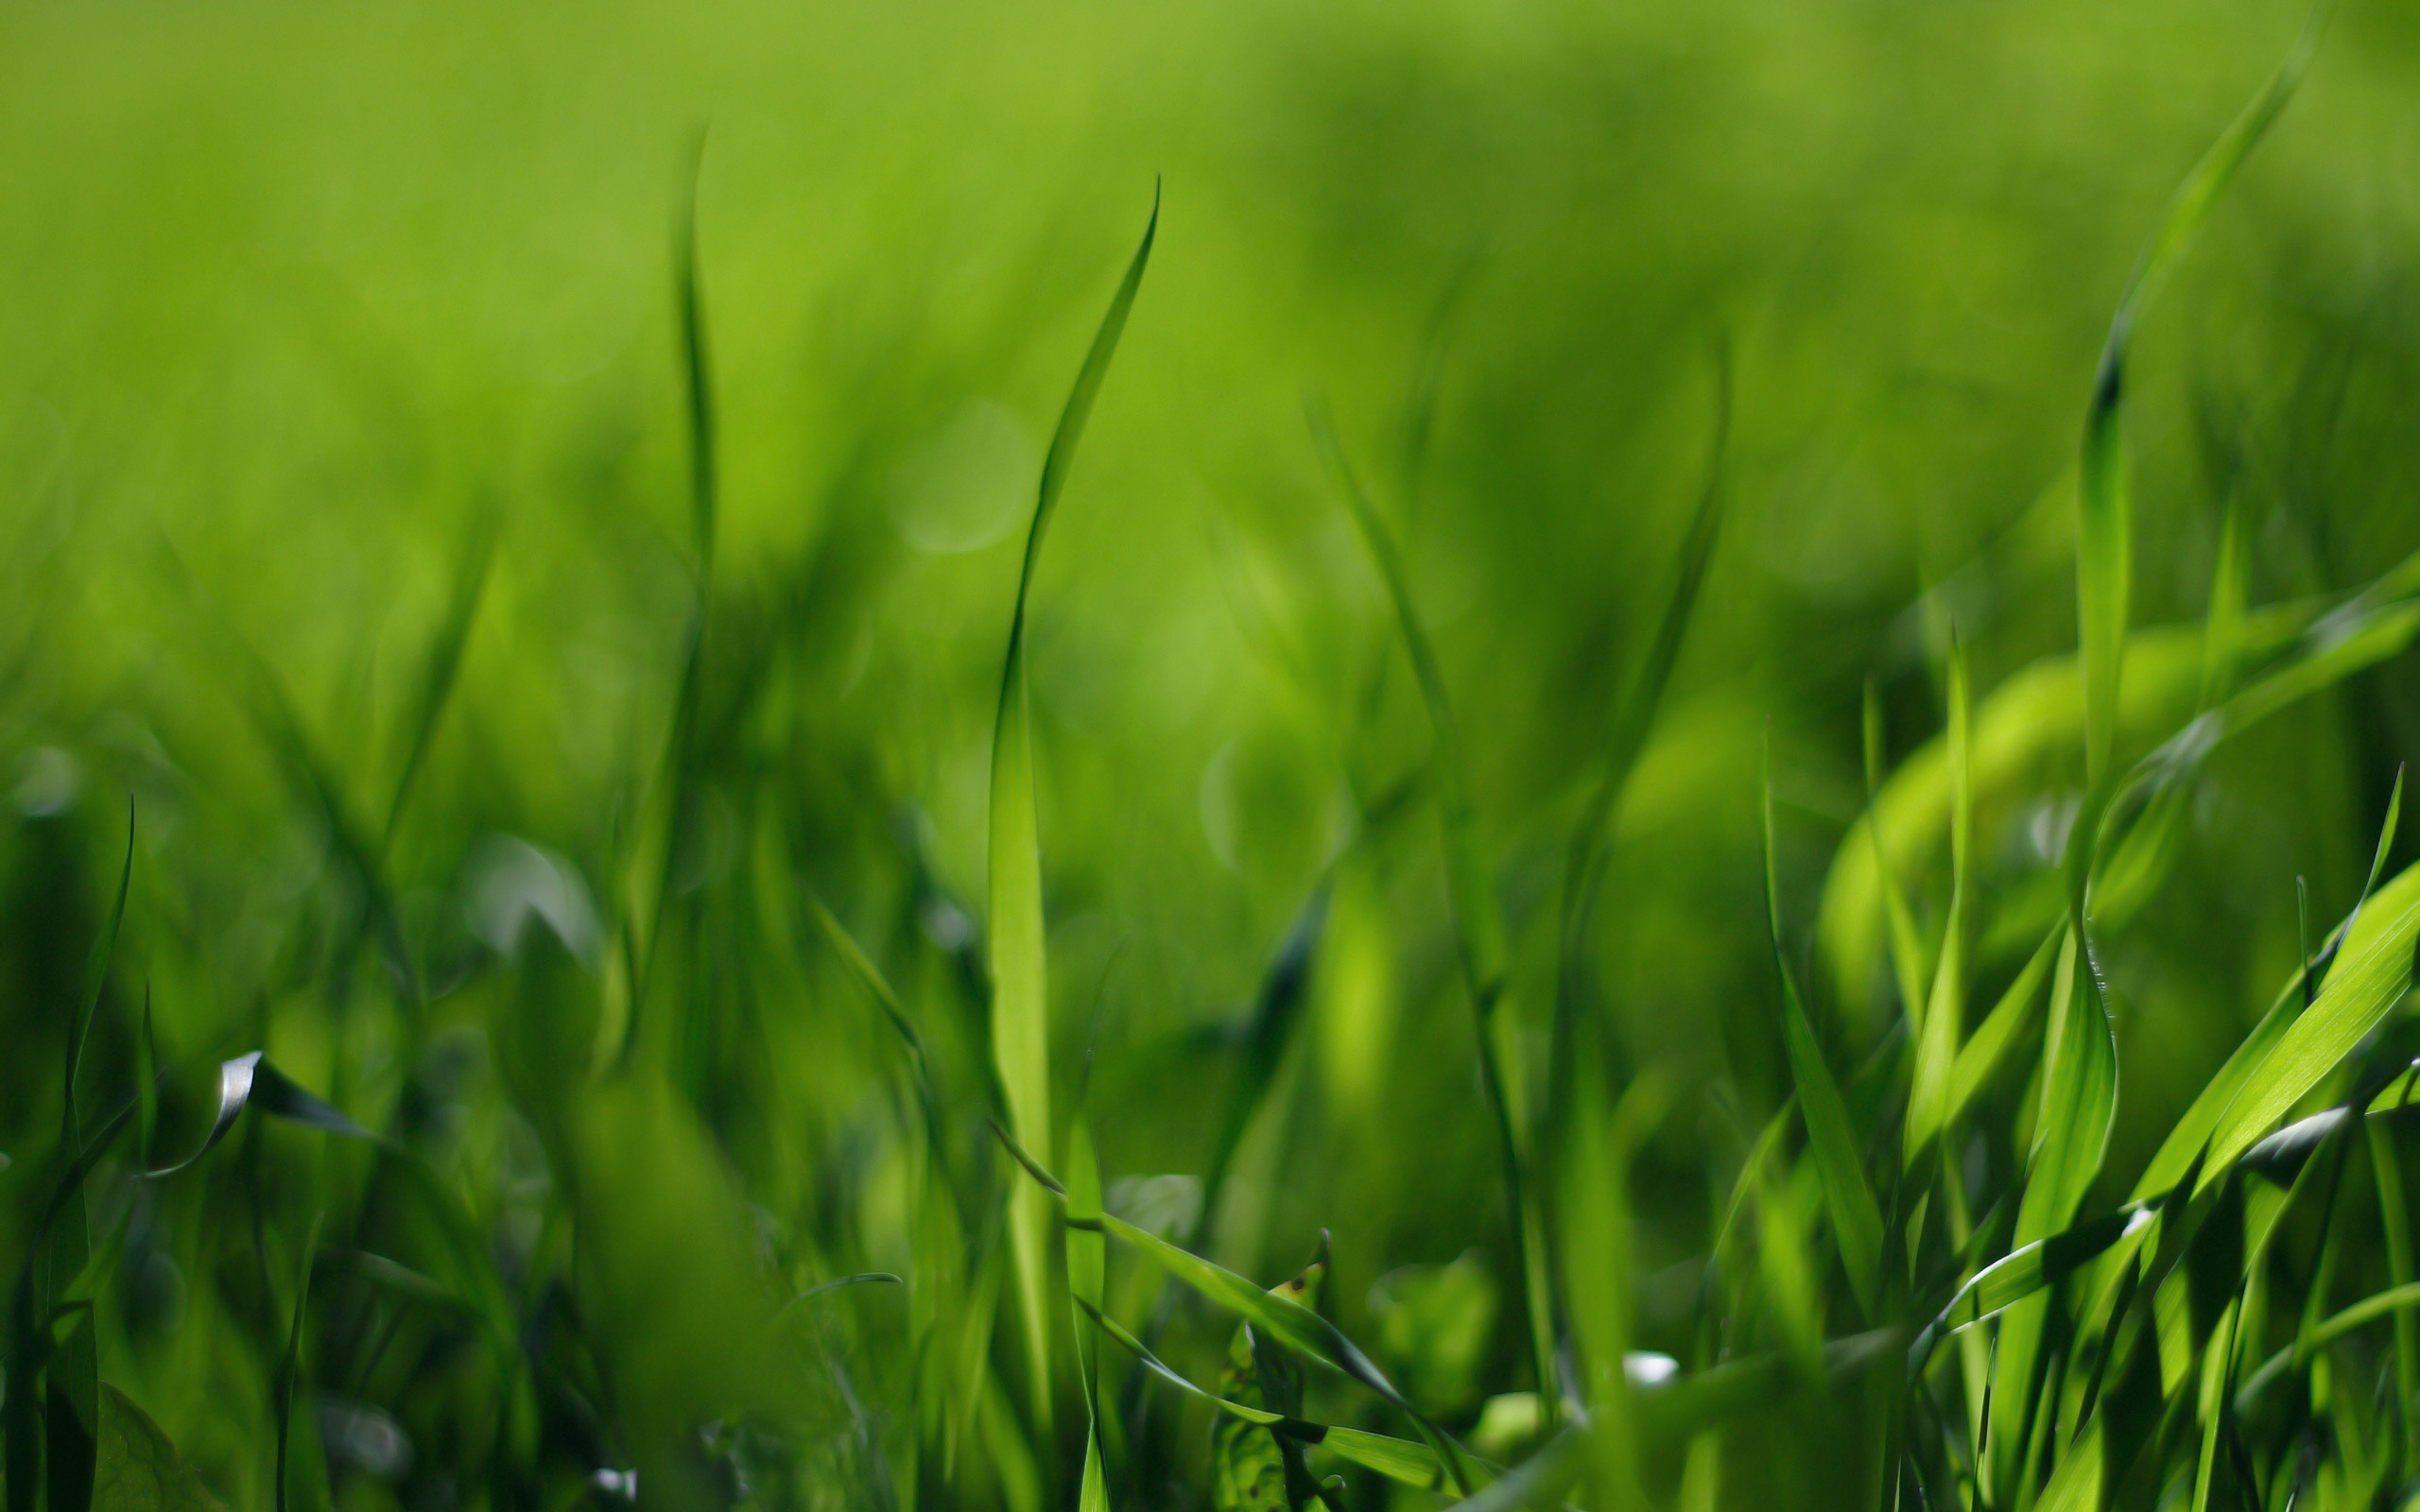 desktop-grass-hd-wallpapers-download | wallpaper.wiki